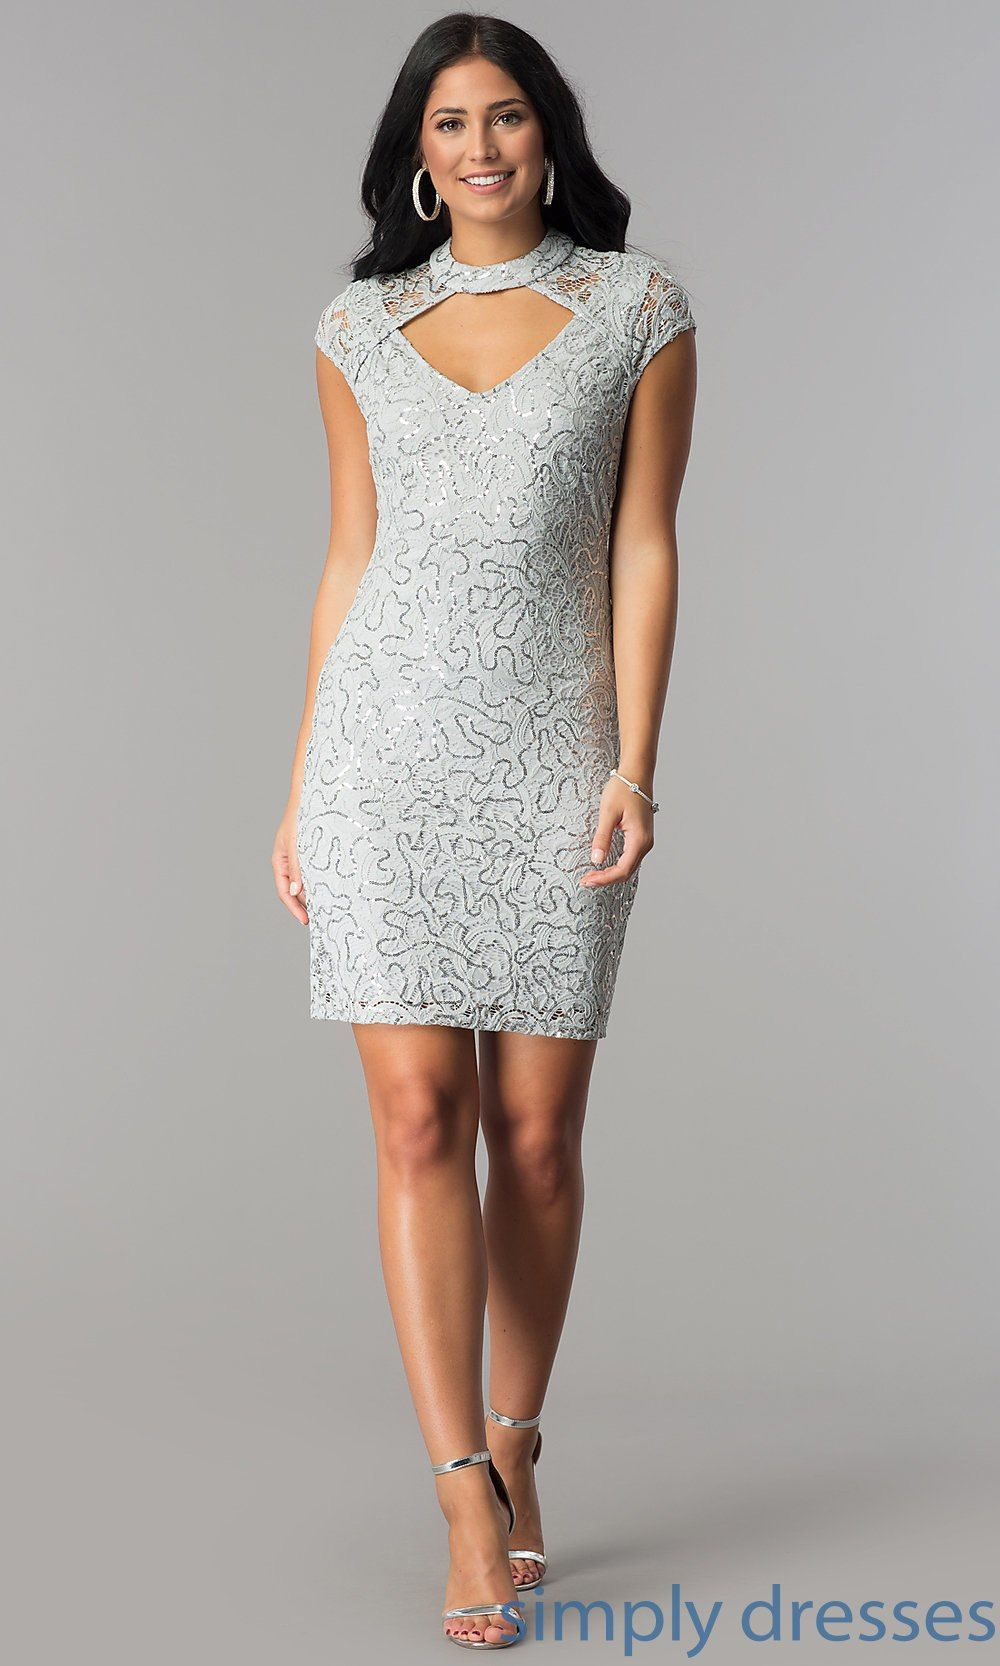 2bdb979c1 Shop silver short party dresses with sequin lace at Simply Dresses.  Semi-formal junior-size lace dresses under $100 with cut outs and collars.